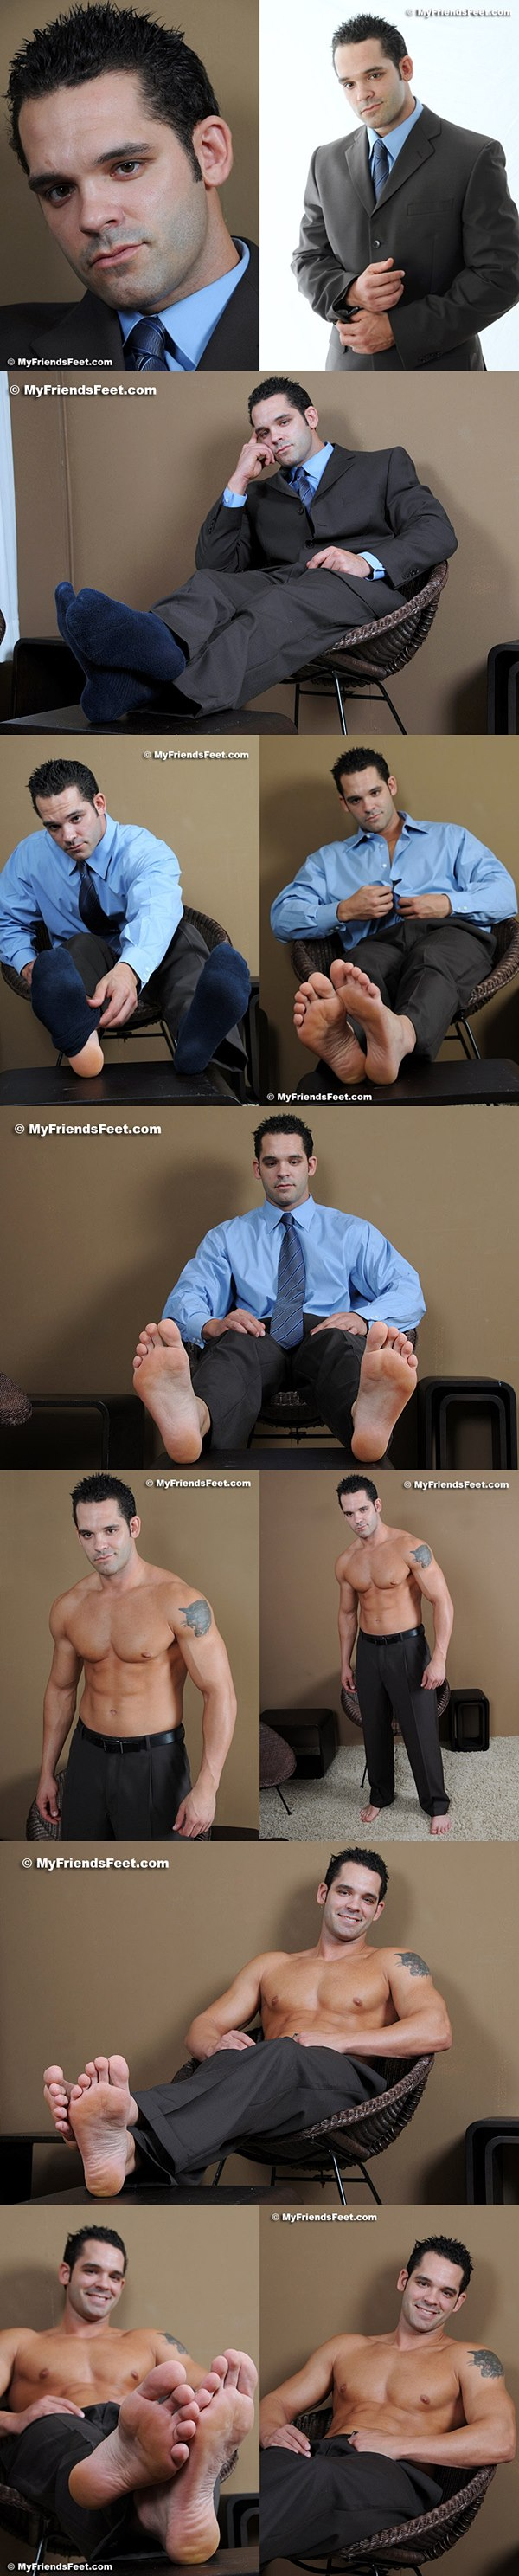 Hot  personal trainer Gio's size 13s in dress socks & bare at Myfriendsfeet